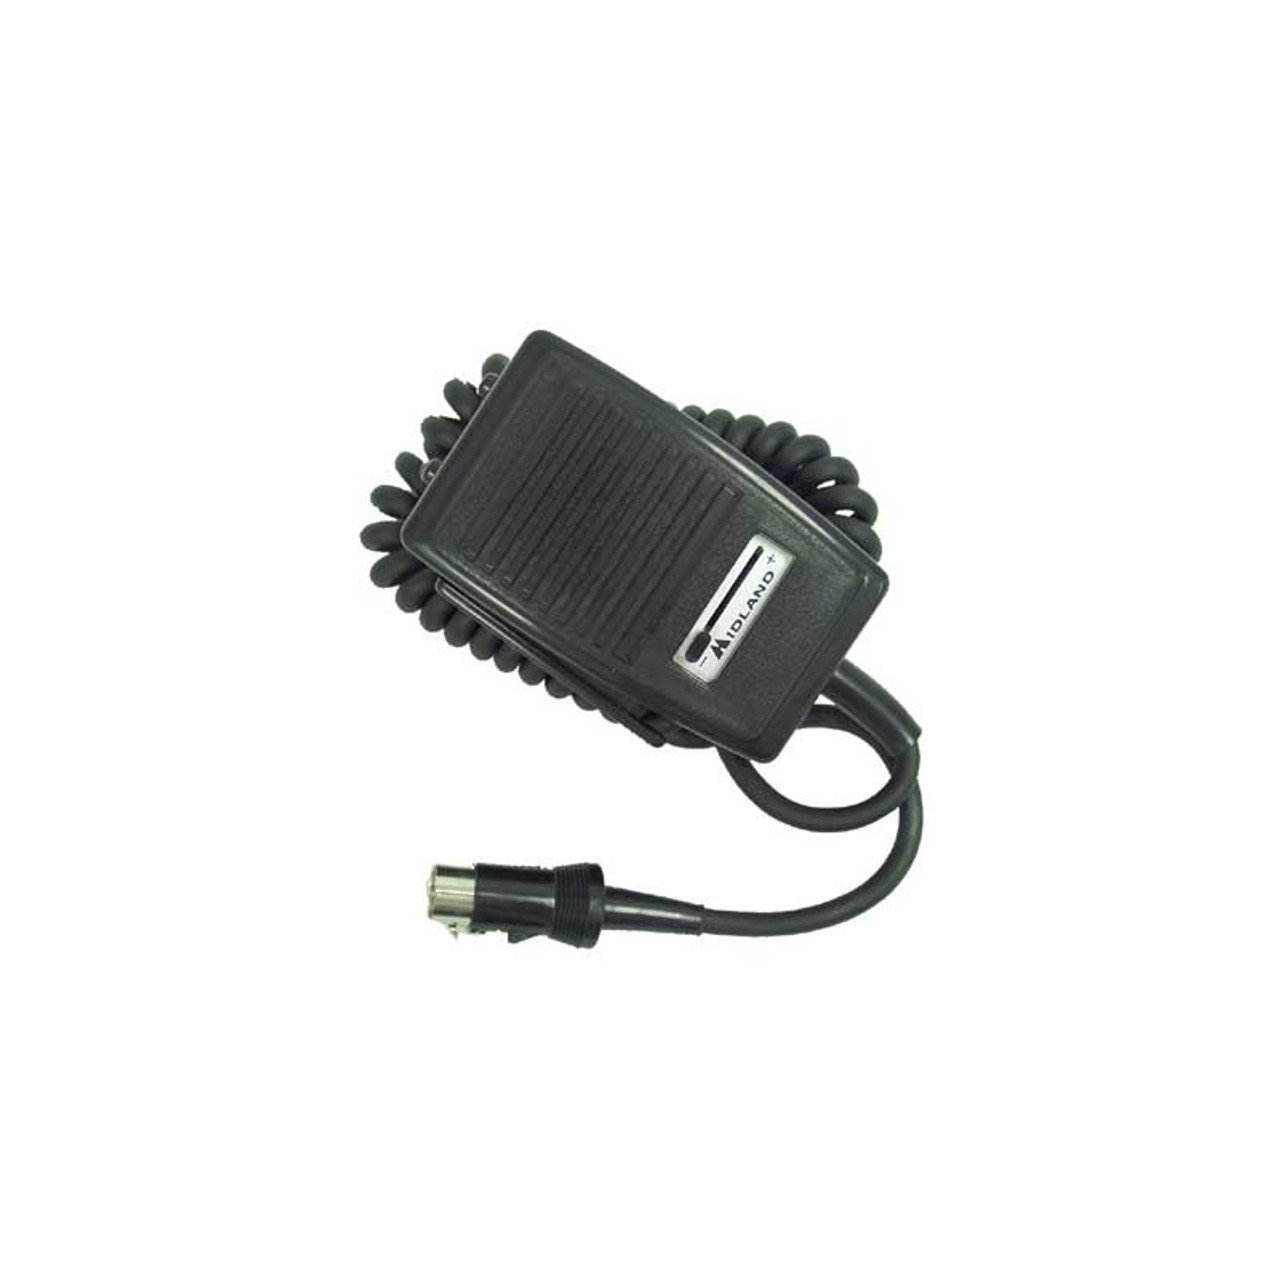 Midland 22300 - 5 Pin Din Power Microphone for Midland CB Radios